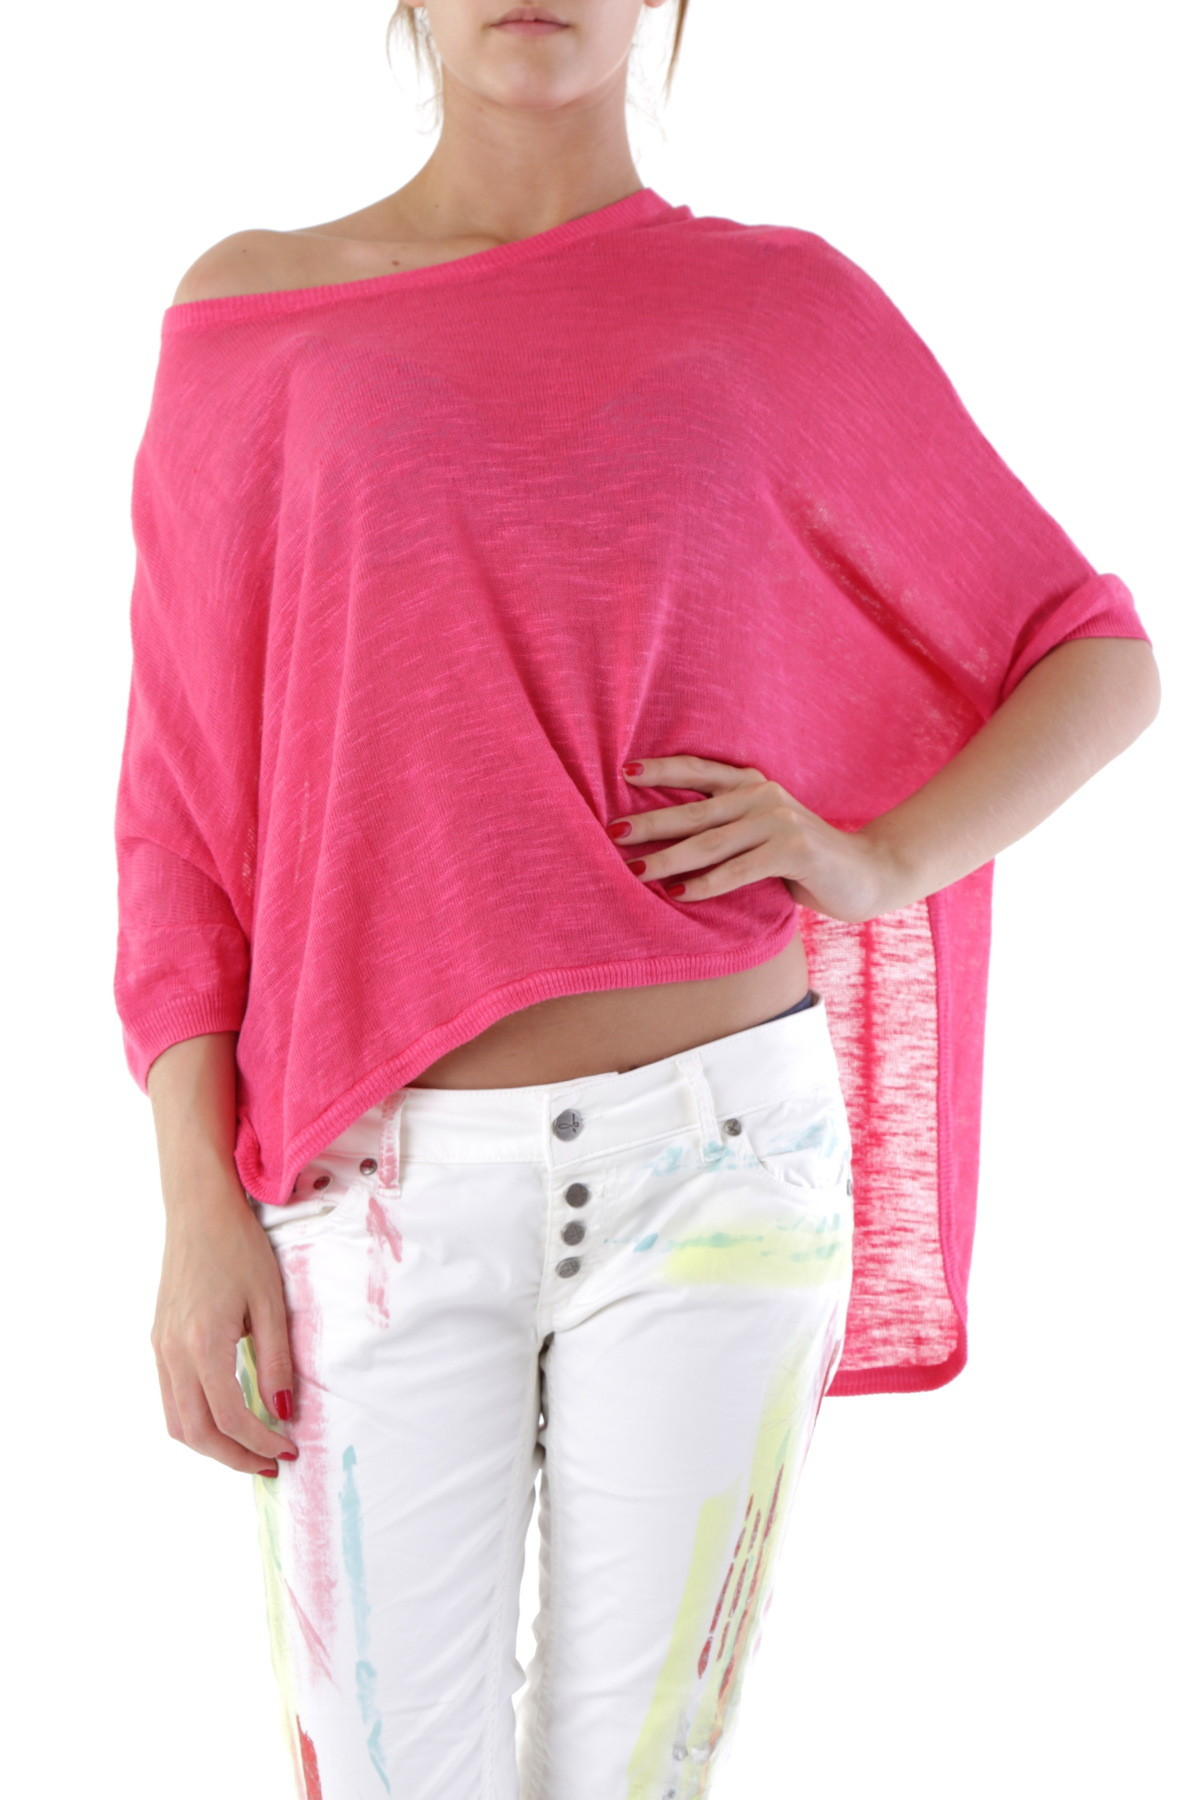 66846-BLOUSE-DONNA-SEXY-WOMAN-COLORE-ROSA